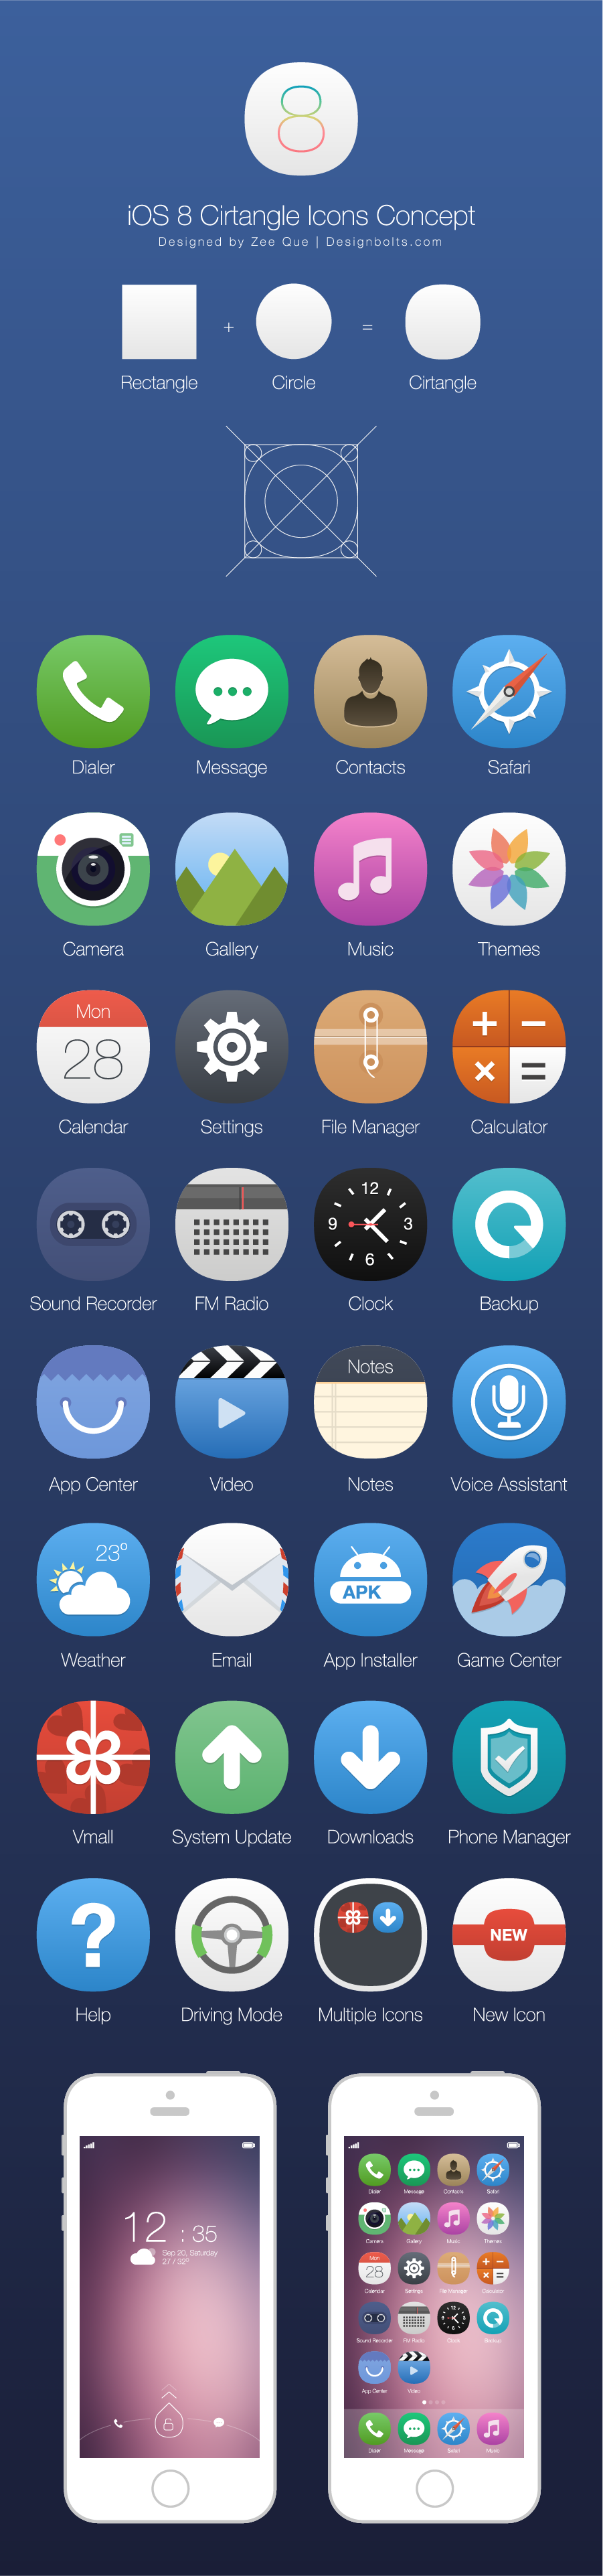 iOS-8-Cirtangle-Icons-Concept